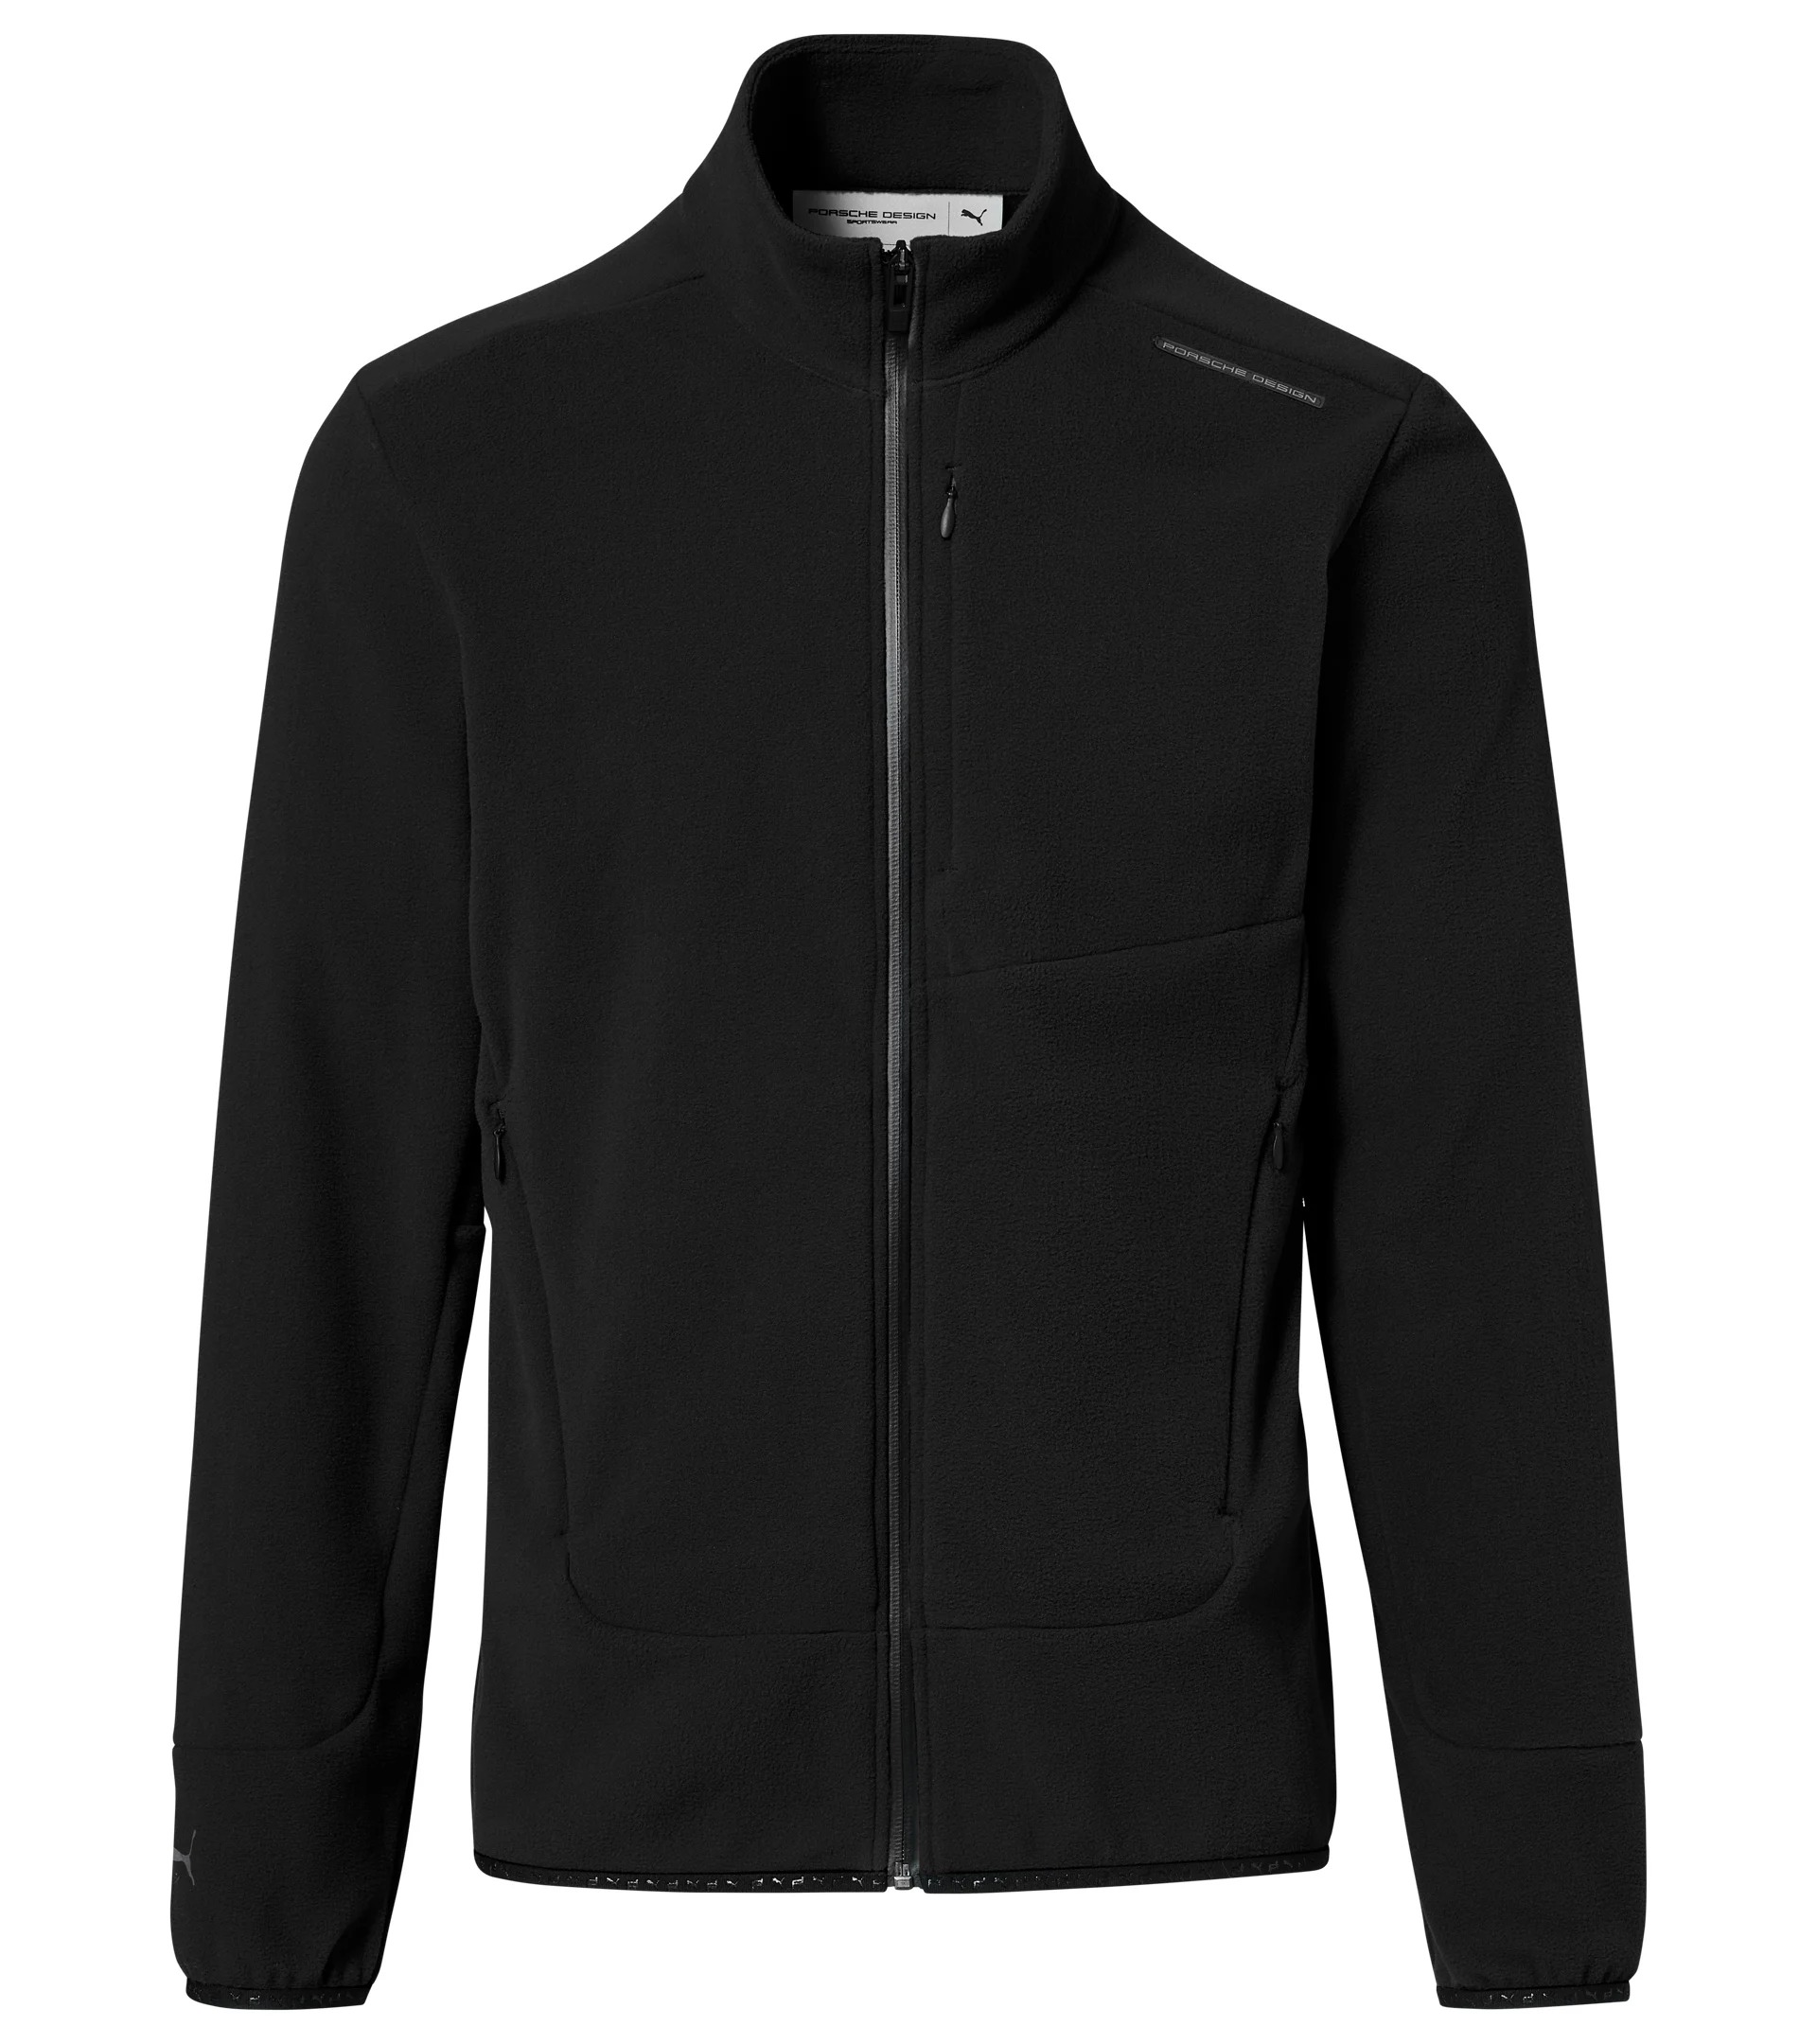 Porsche Design Polar Fleece Jacket fleecová bunda